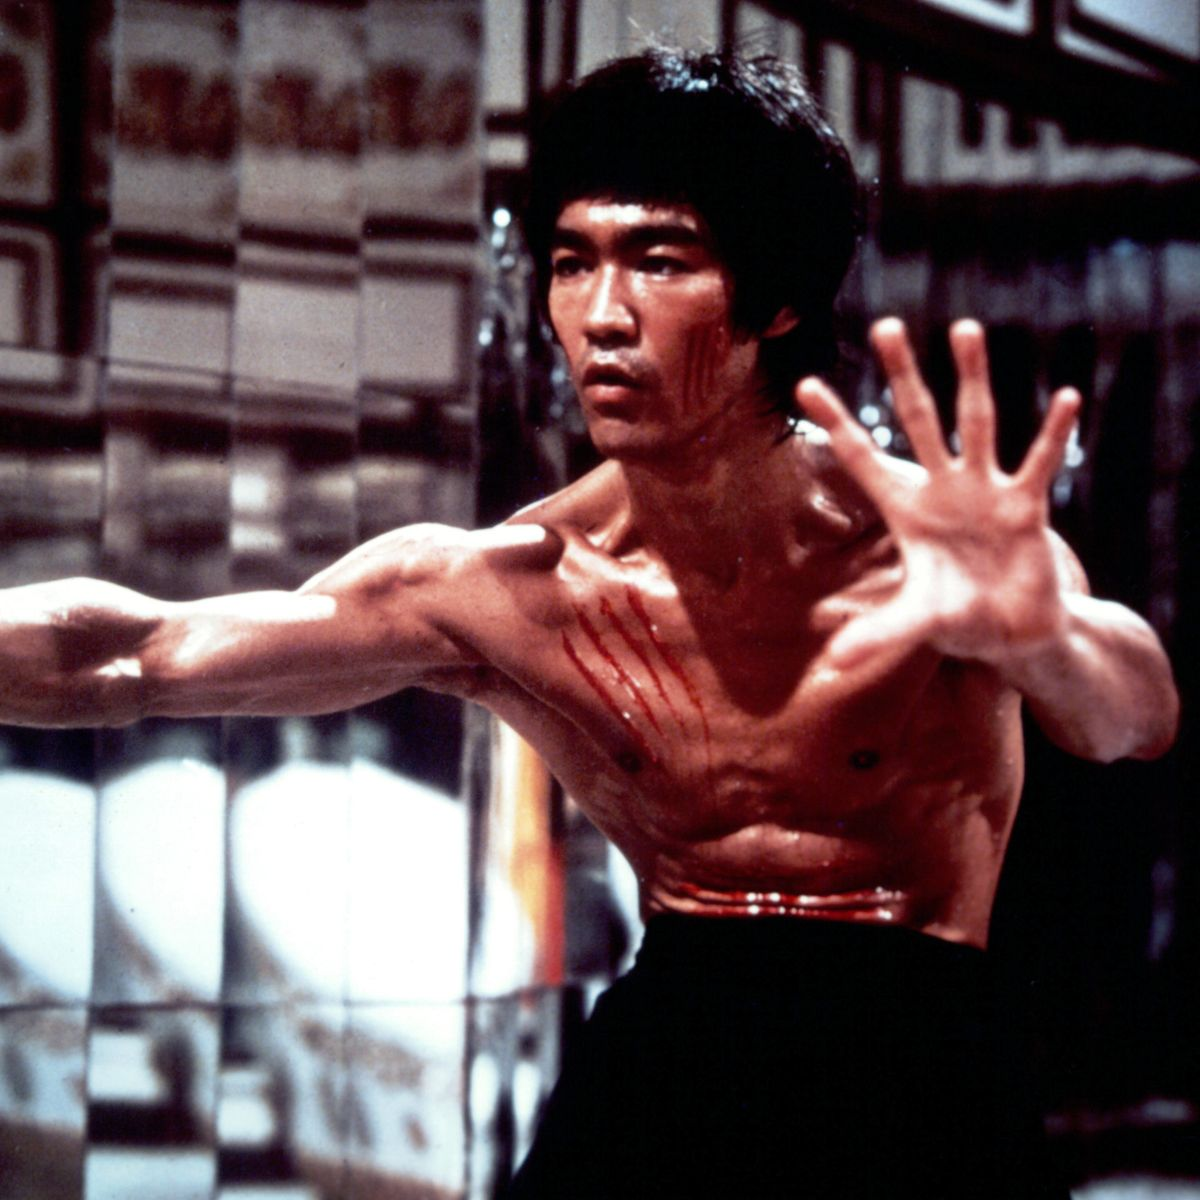 bfc8a0e84 Every Bruce Lee Movie, Ranked From Worst to Best